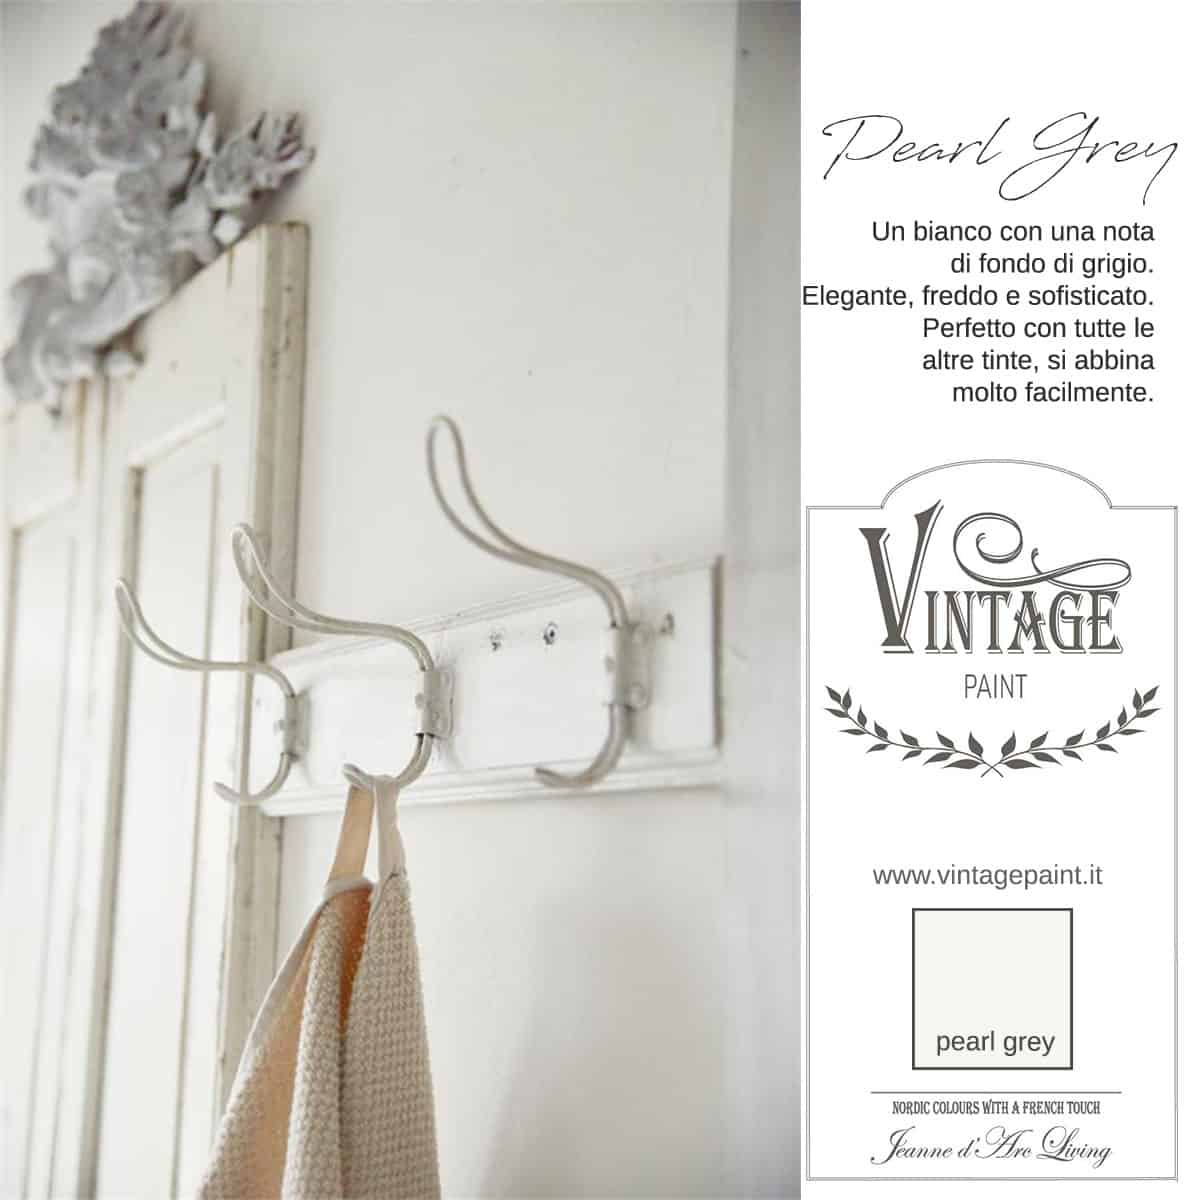 pearl grey vintage chalk paint vernici shabby chic autentico look gesso